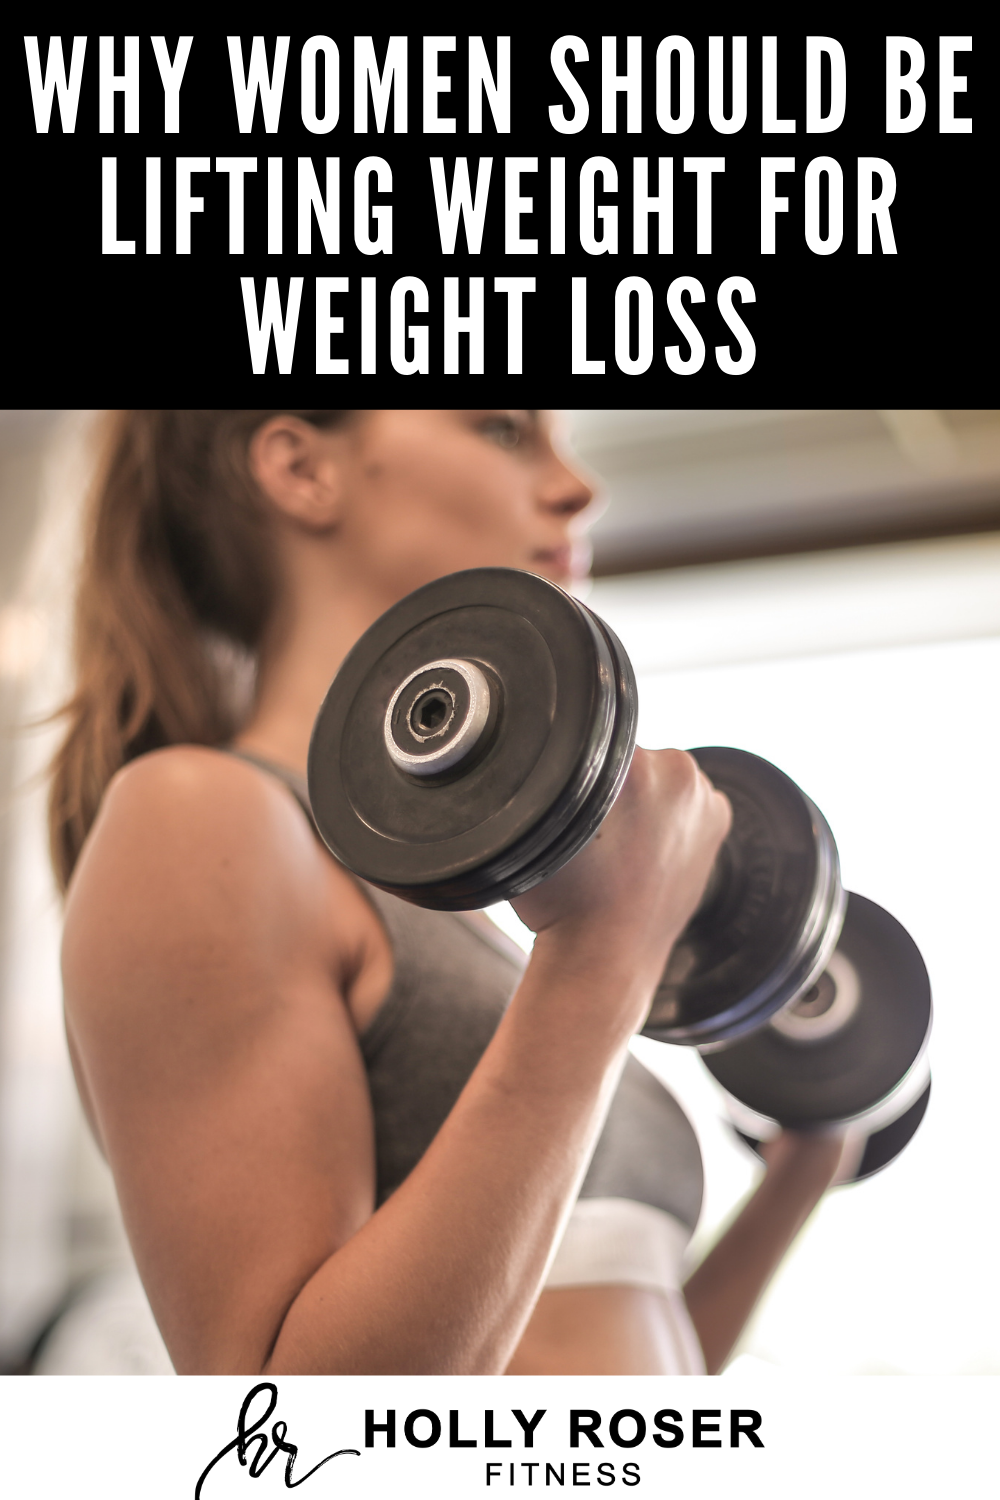 Why Women Should be Lifting Weight for Weight Loss